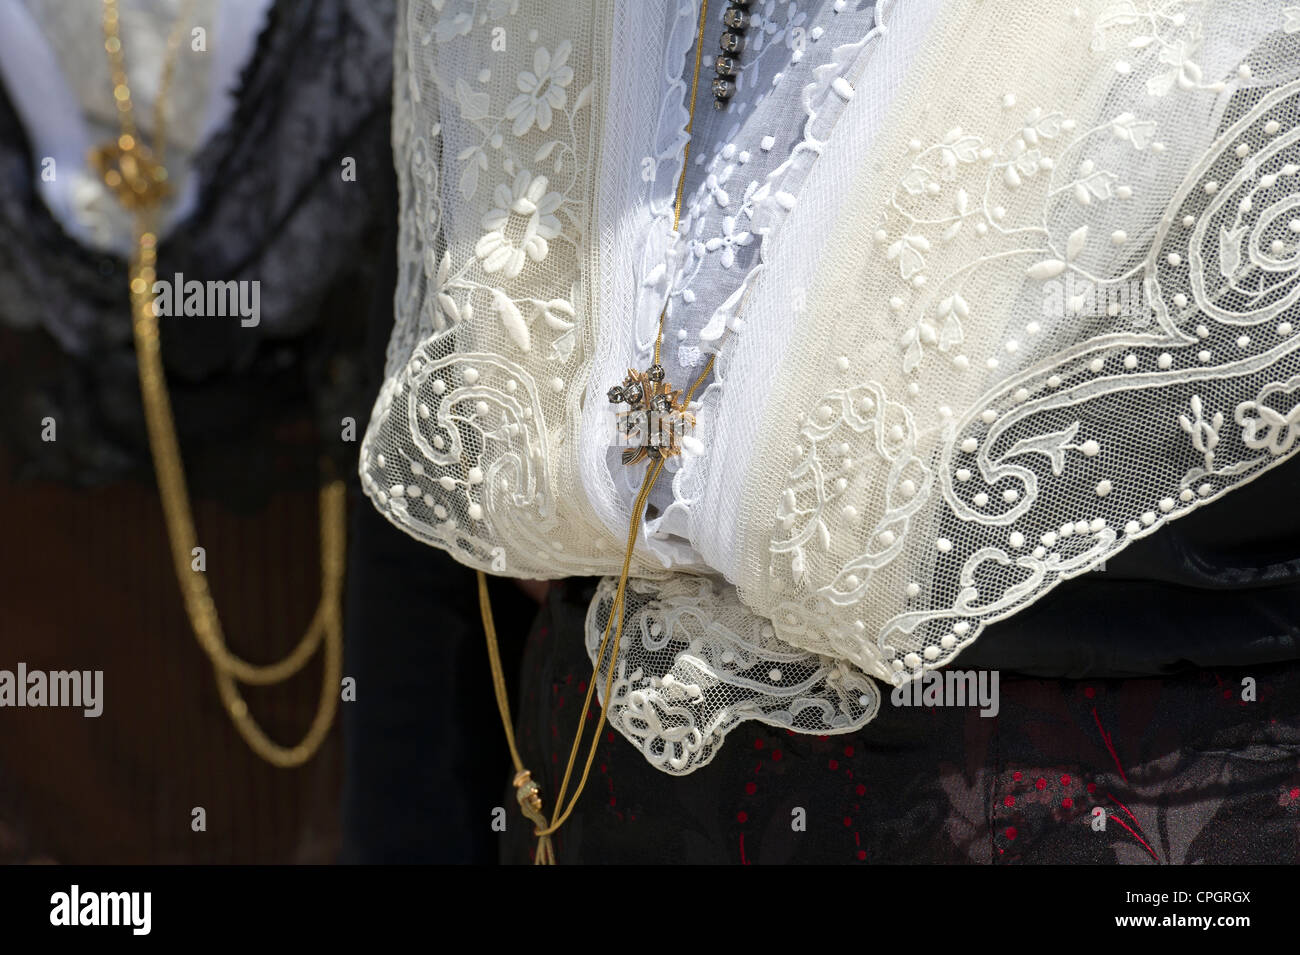 France, Bouches du Rhone (13), Arles, costume Day, costume detail. - Stock Image